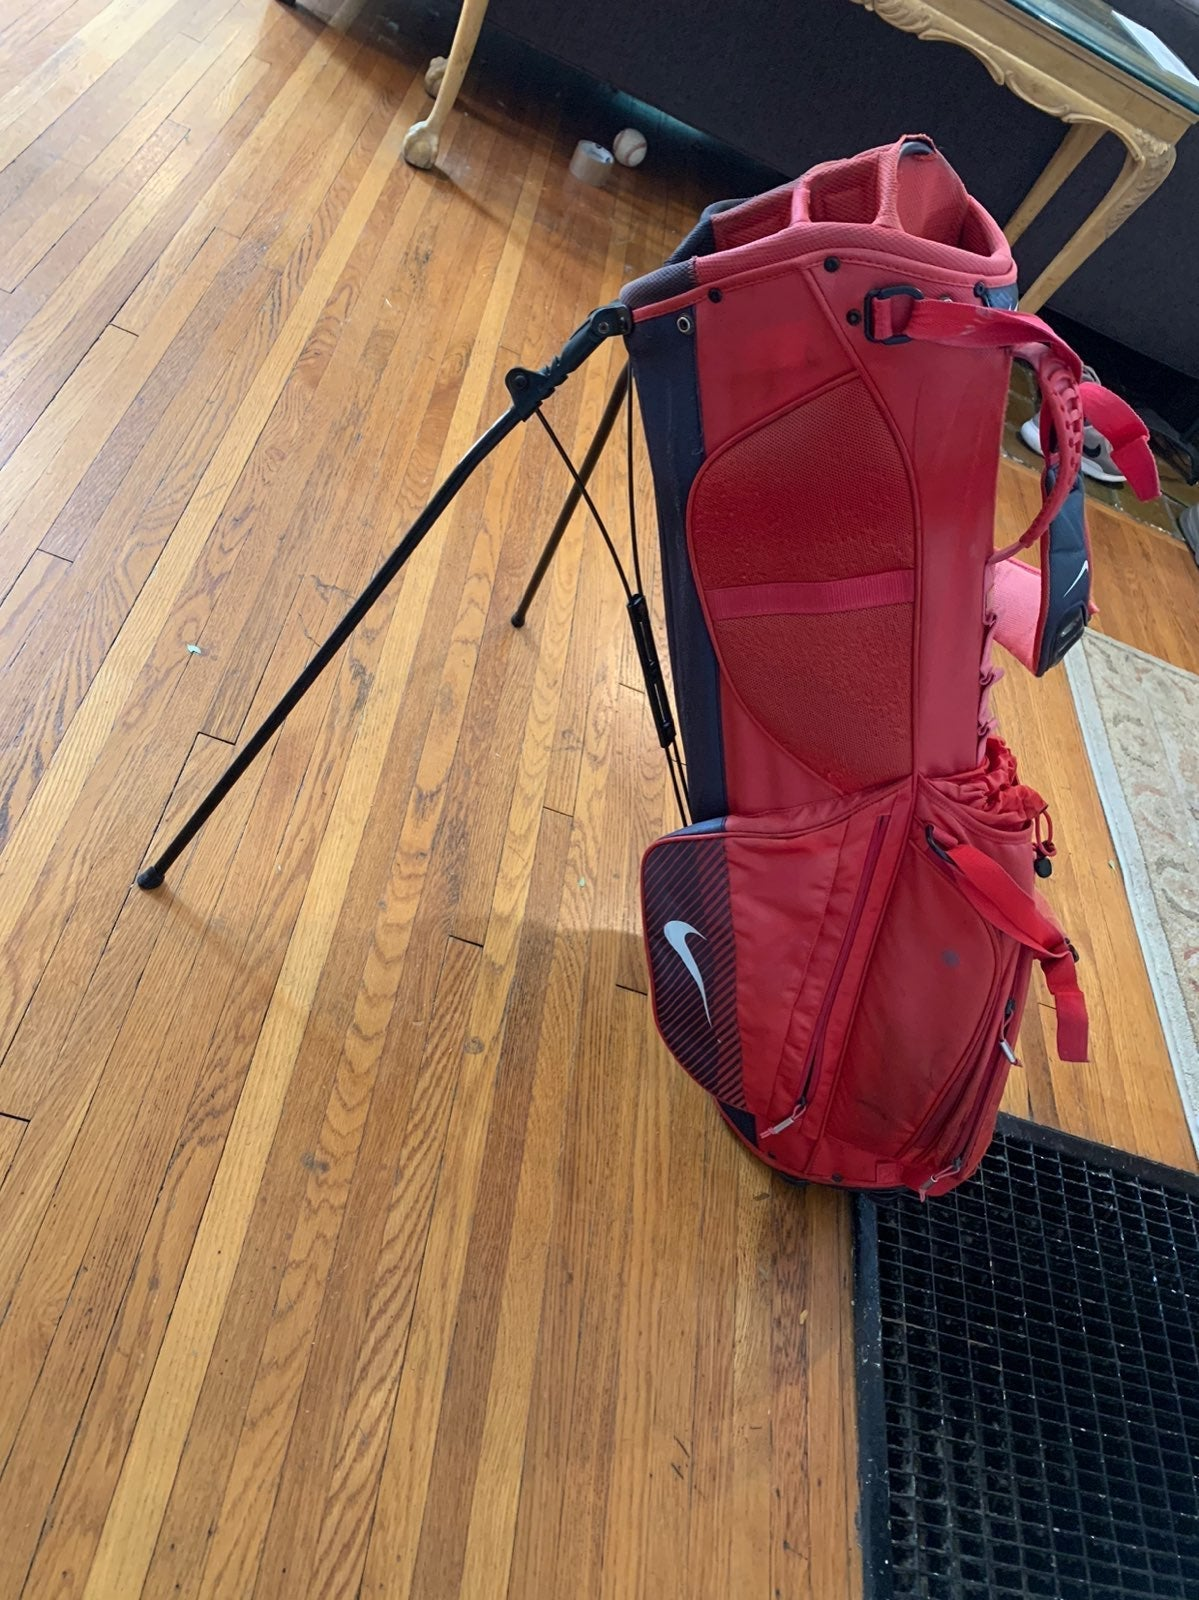 Nike Standing Golf Bag - 8 pocket